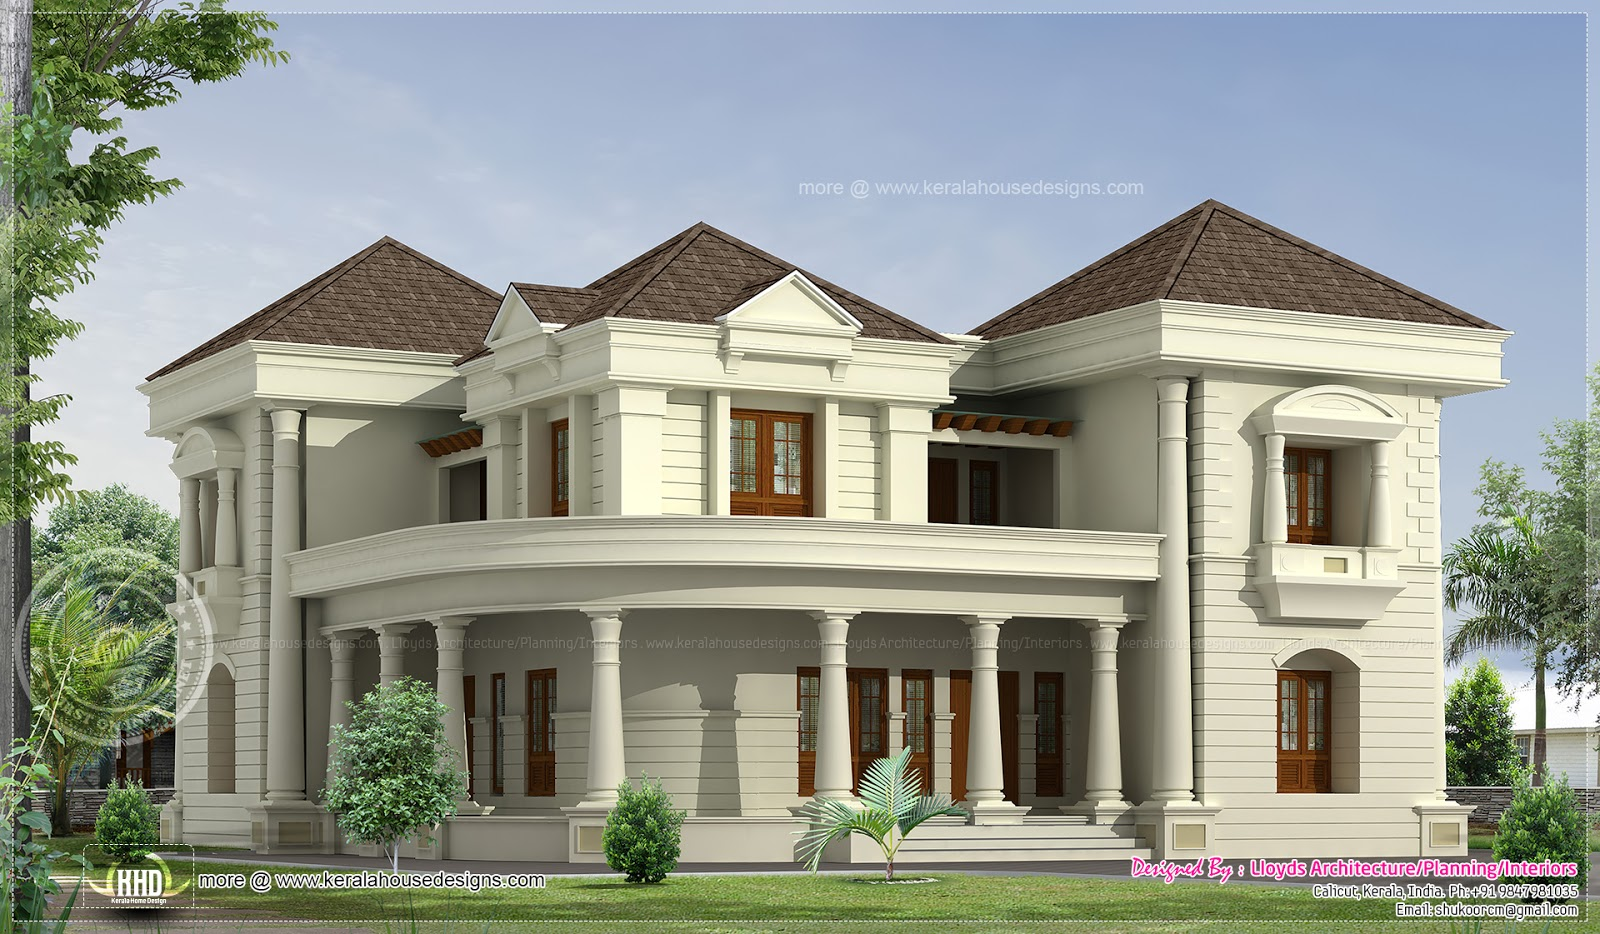 5 bedroom luxurious bungalow floor plan and 3d view home Bungalo house